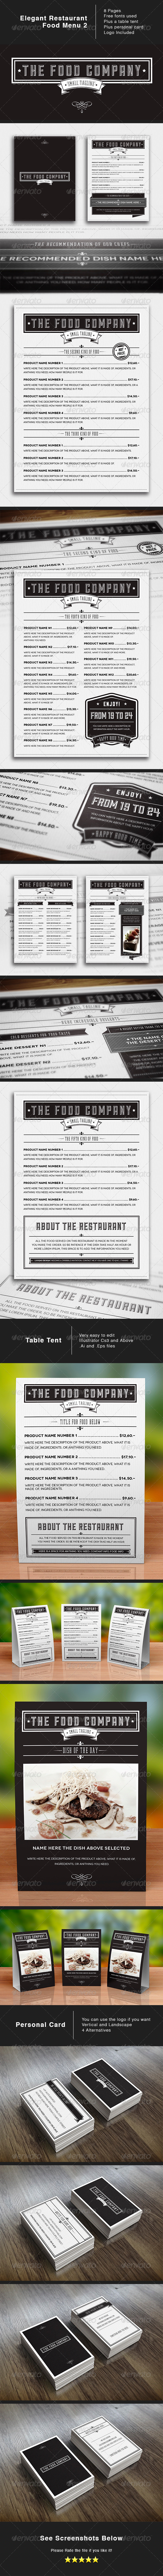 GraphicRiver The Food Company Menu 5054624